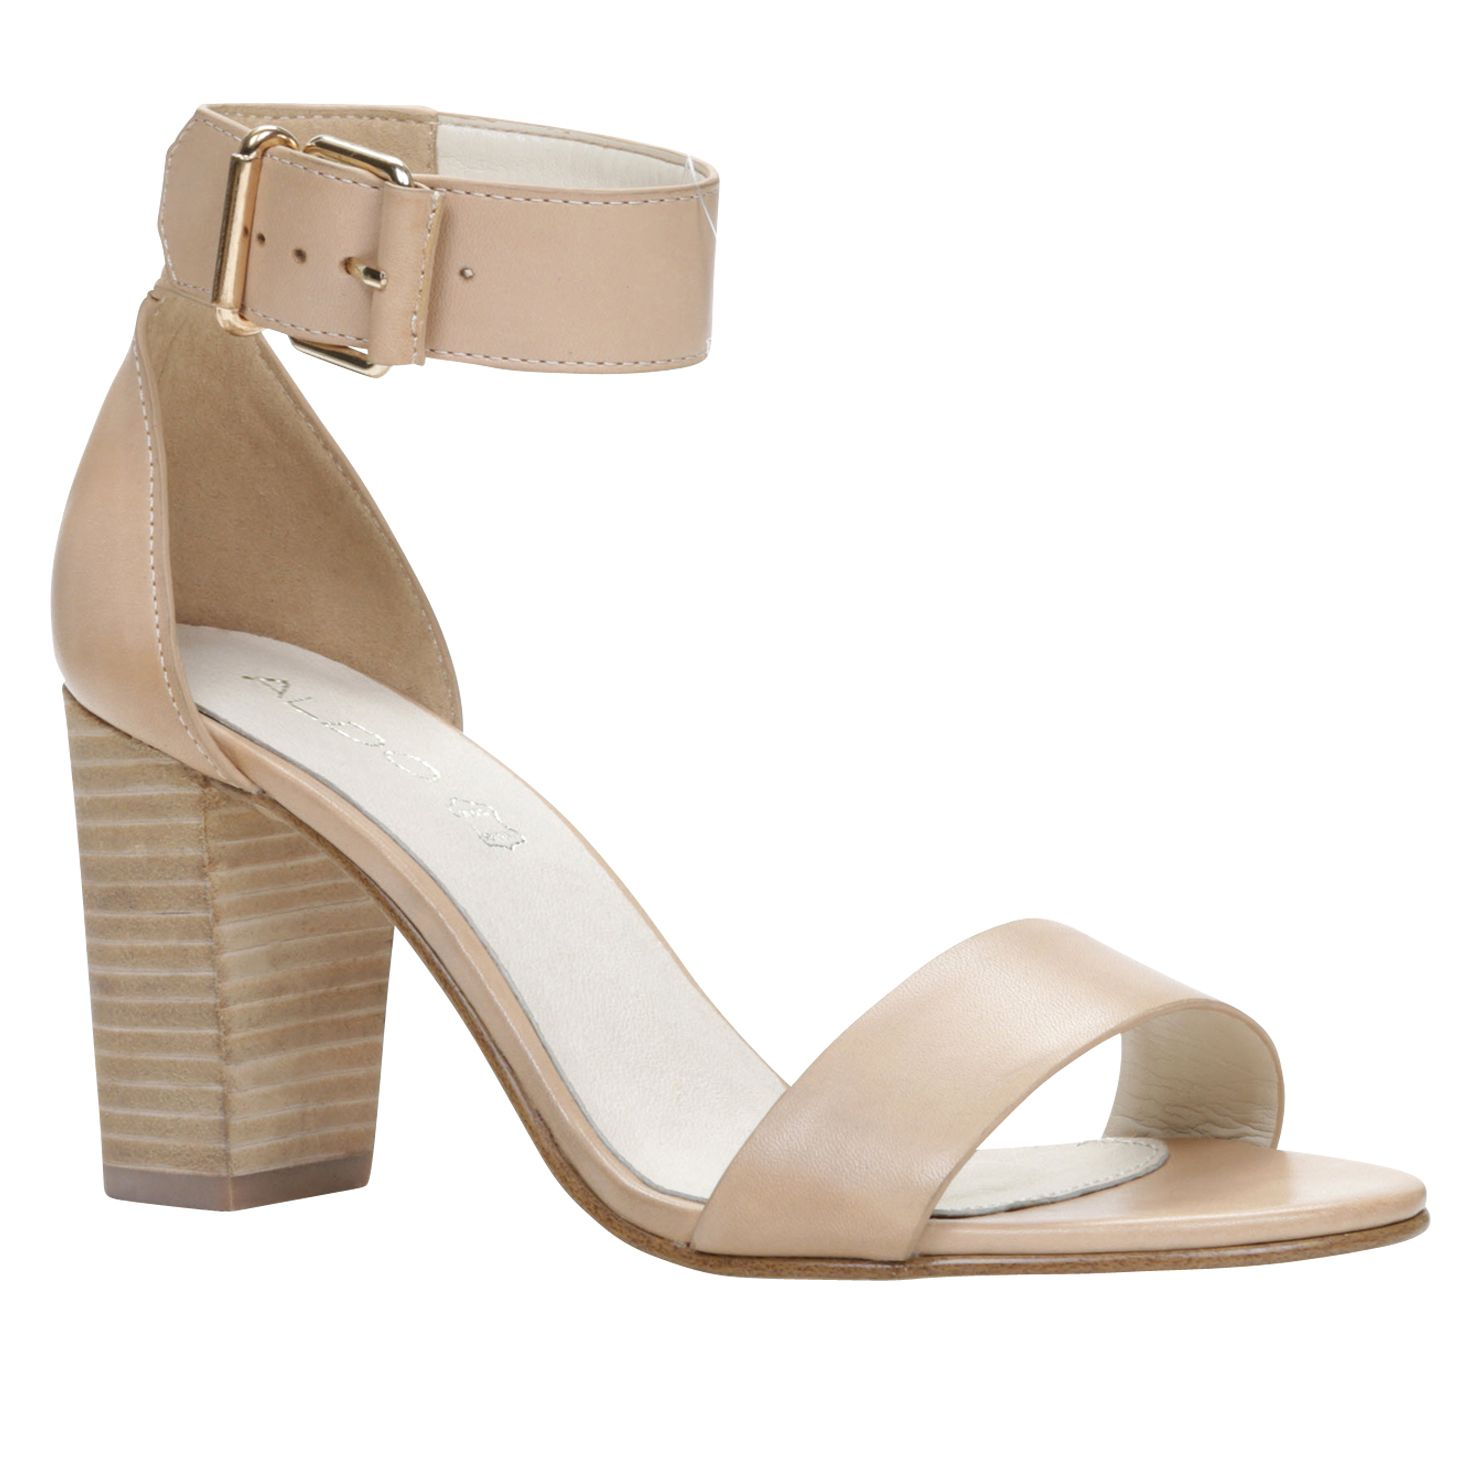 Pekny block heel ankle strap sandals